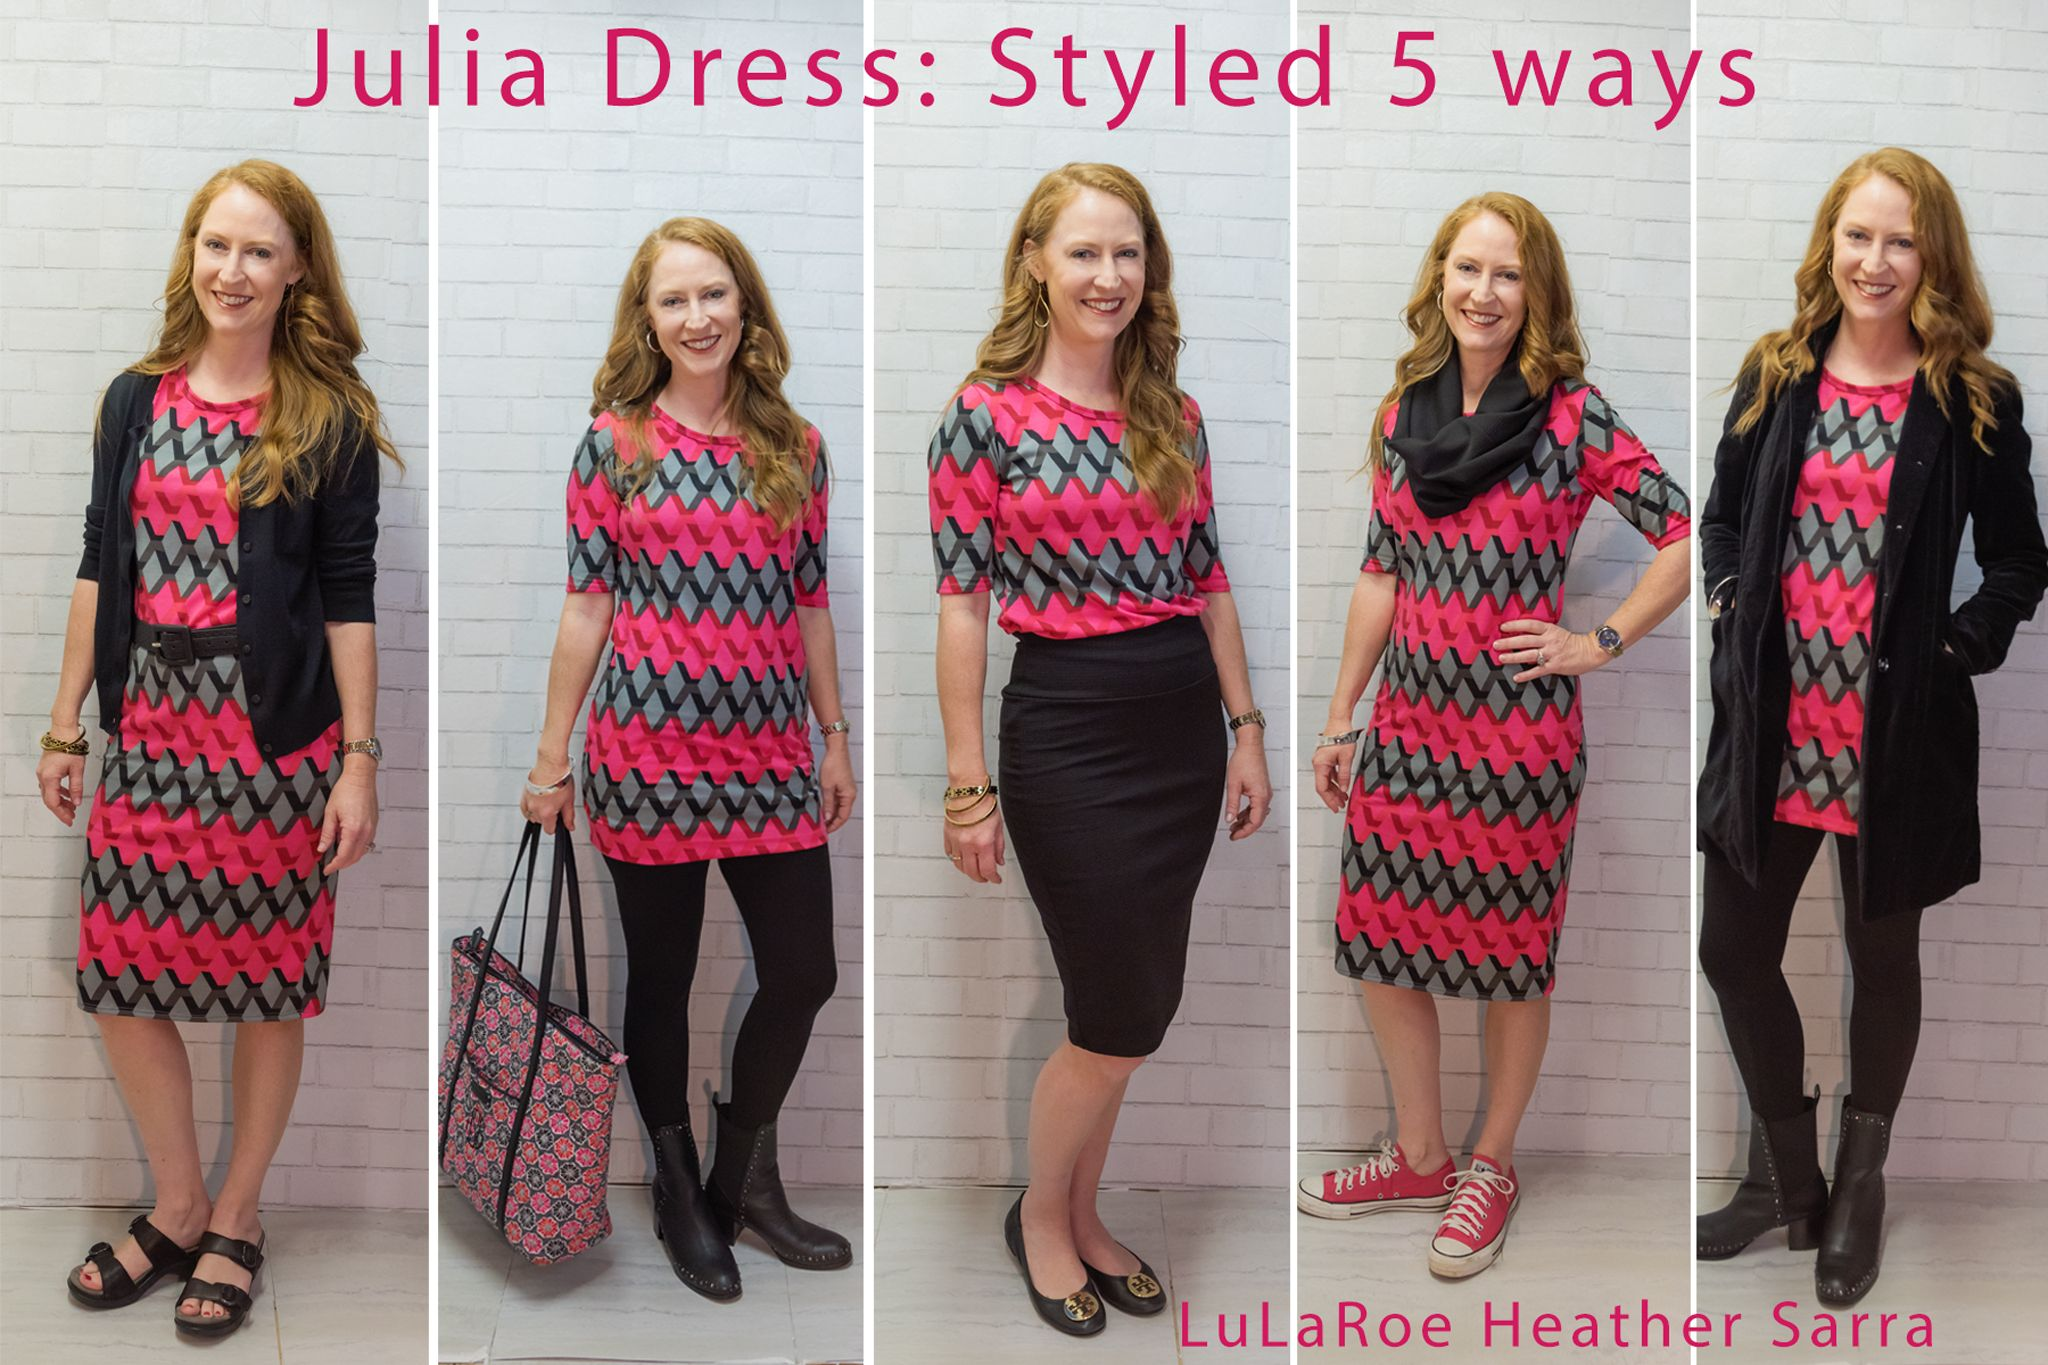 9756ceded7 Julia Dress - Ways to Wear 1. for work 2. with leggings 3. with Cassie  Skirt 4. everyday 5. evening